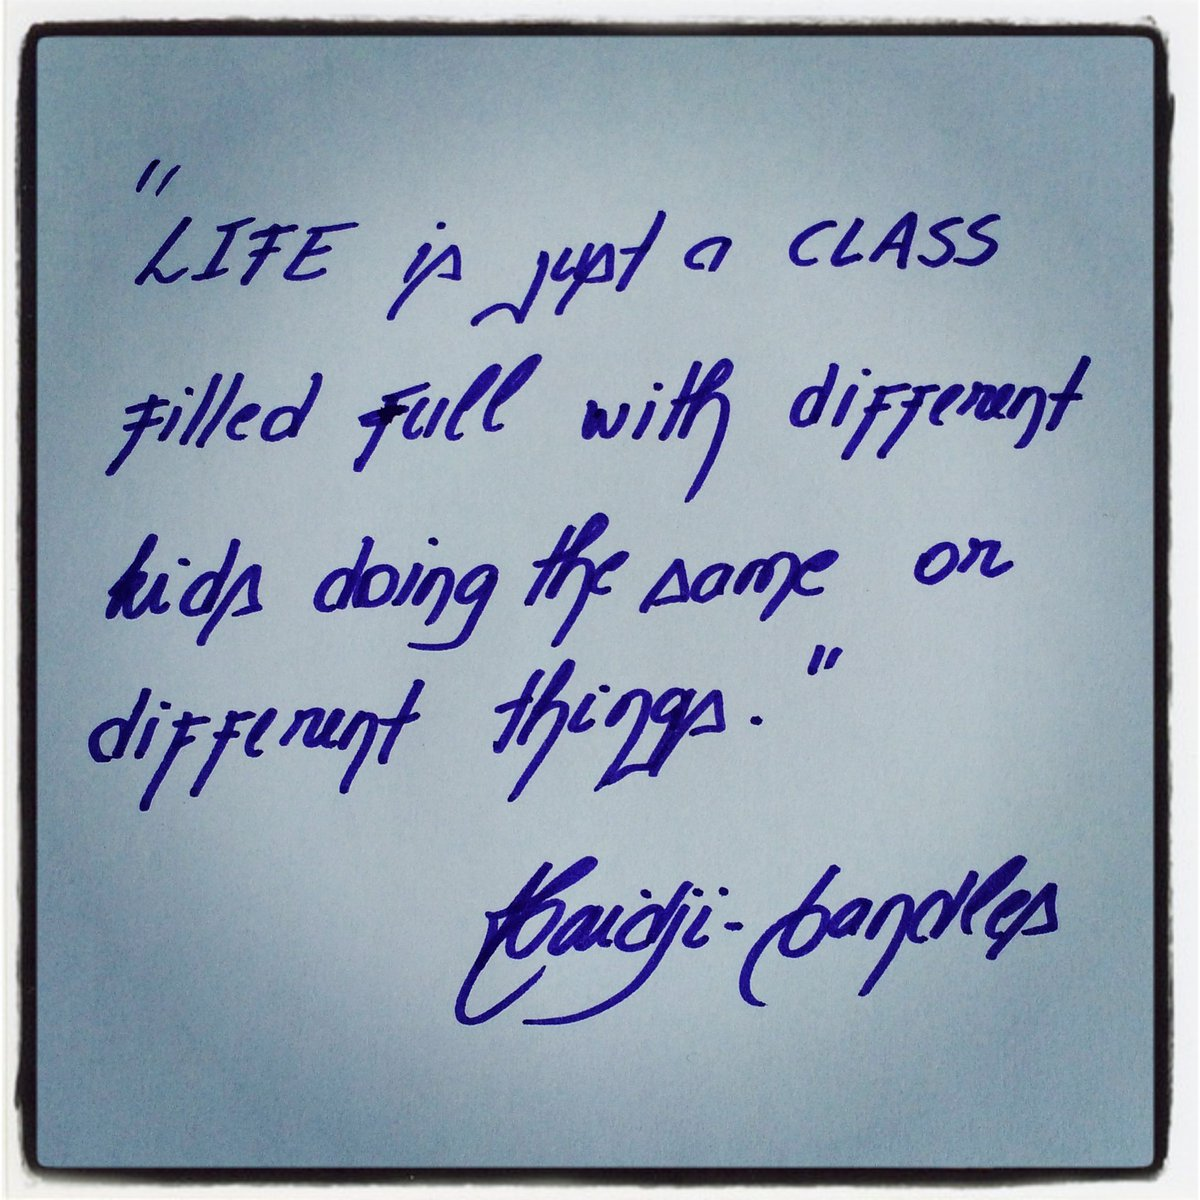 """Book Quote:""""Life is just a class filled full with...."""" Click on  https://t.co/cgpIWdIPer #life #educateyourself #read #quoteoftheday  #kindleunlimited  #bookquote #quote #quotes  #inspiration #haidji #bookquotes  #bookquote #goodreads #books #read #reading #ku #book https://t.co/uy0ORvIogU"""